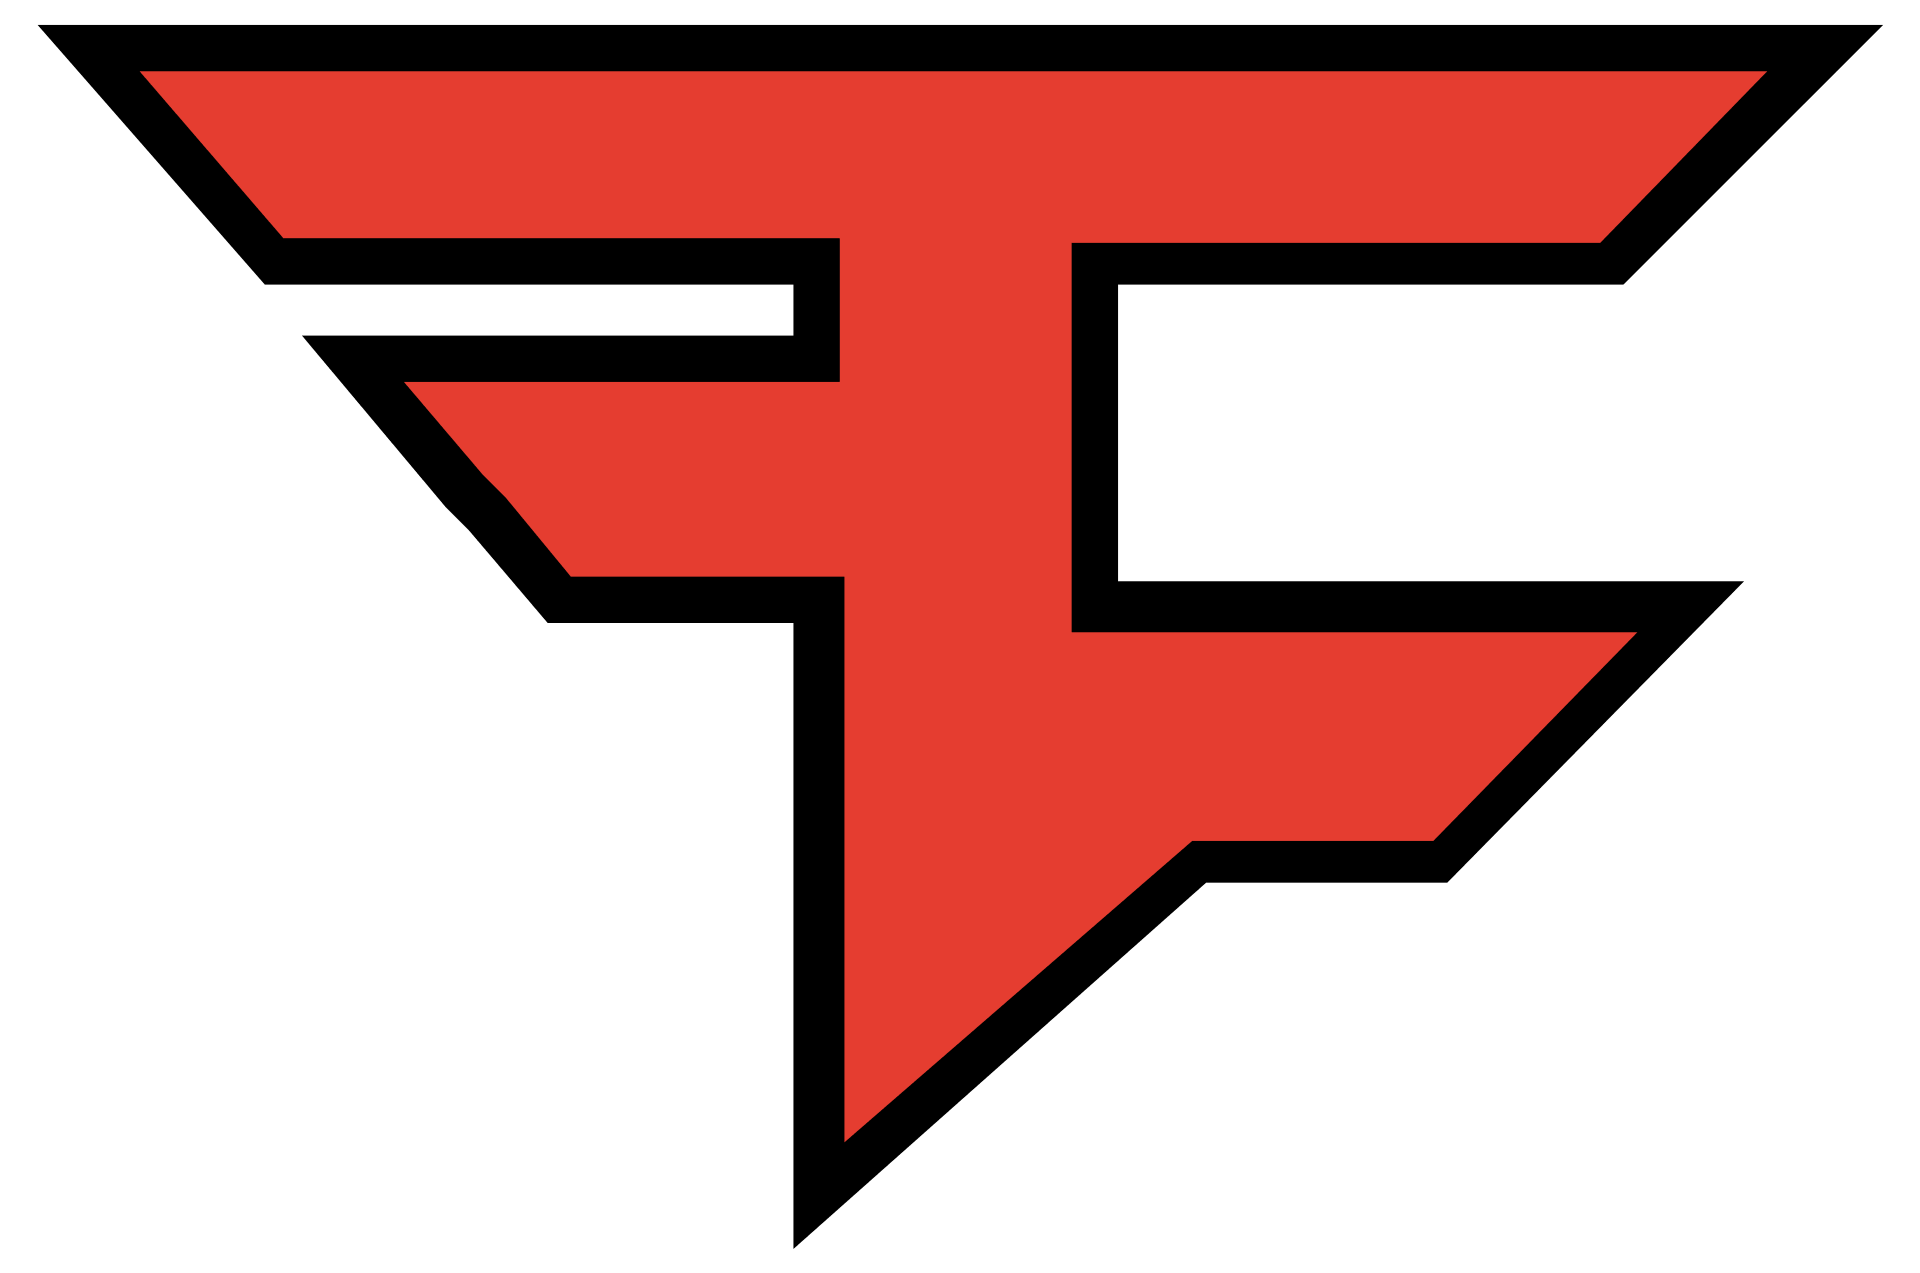 Fortnite logo - Tfue